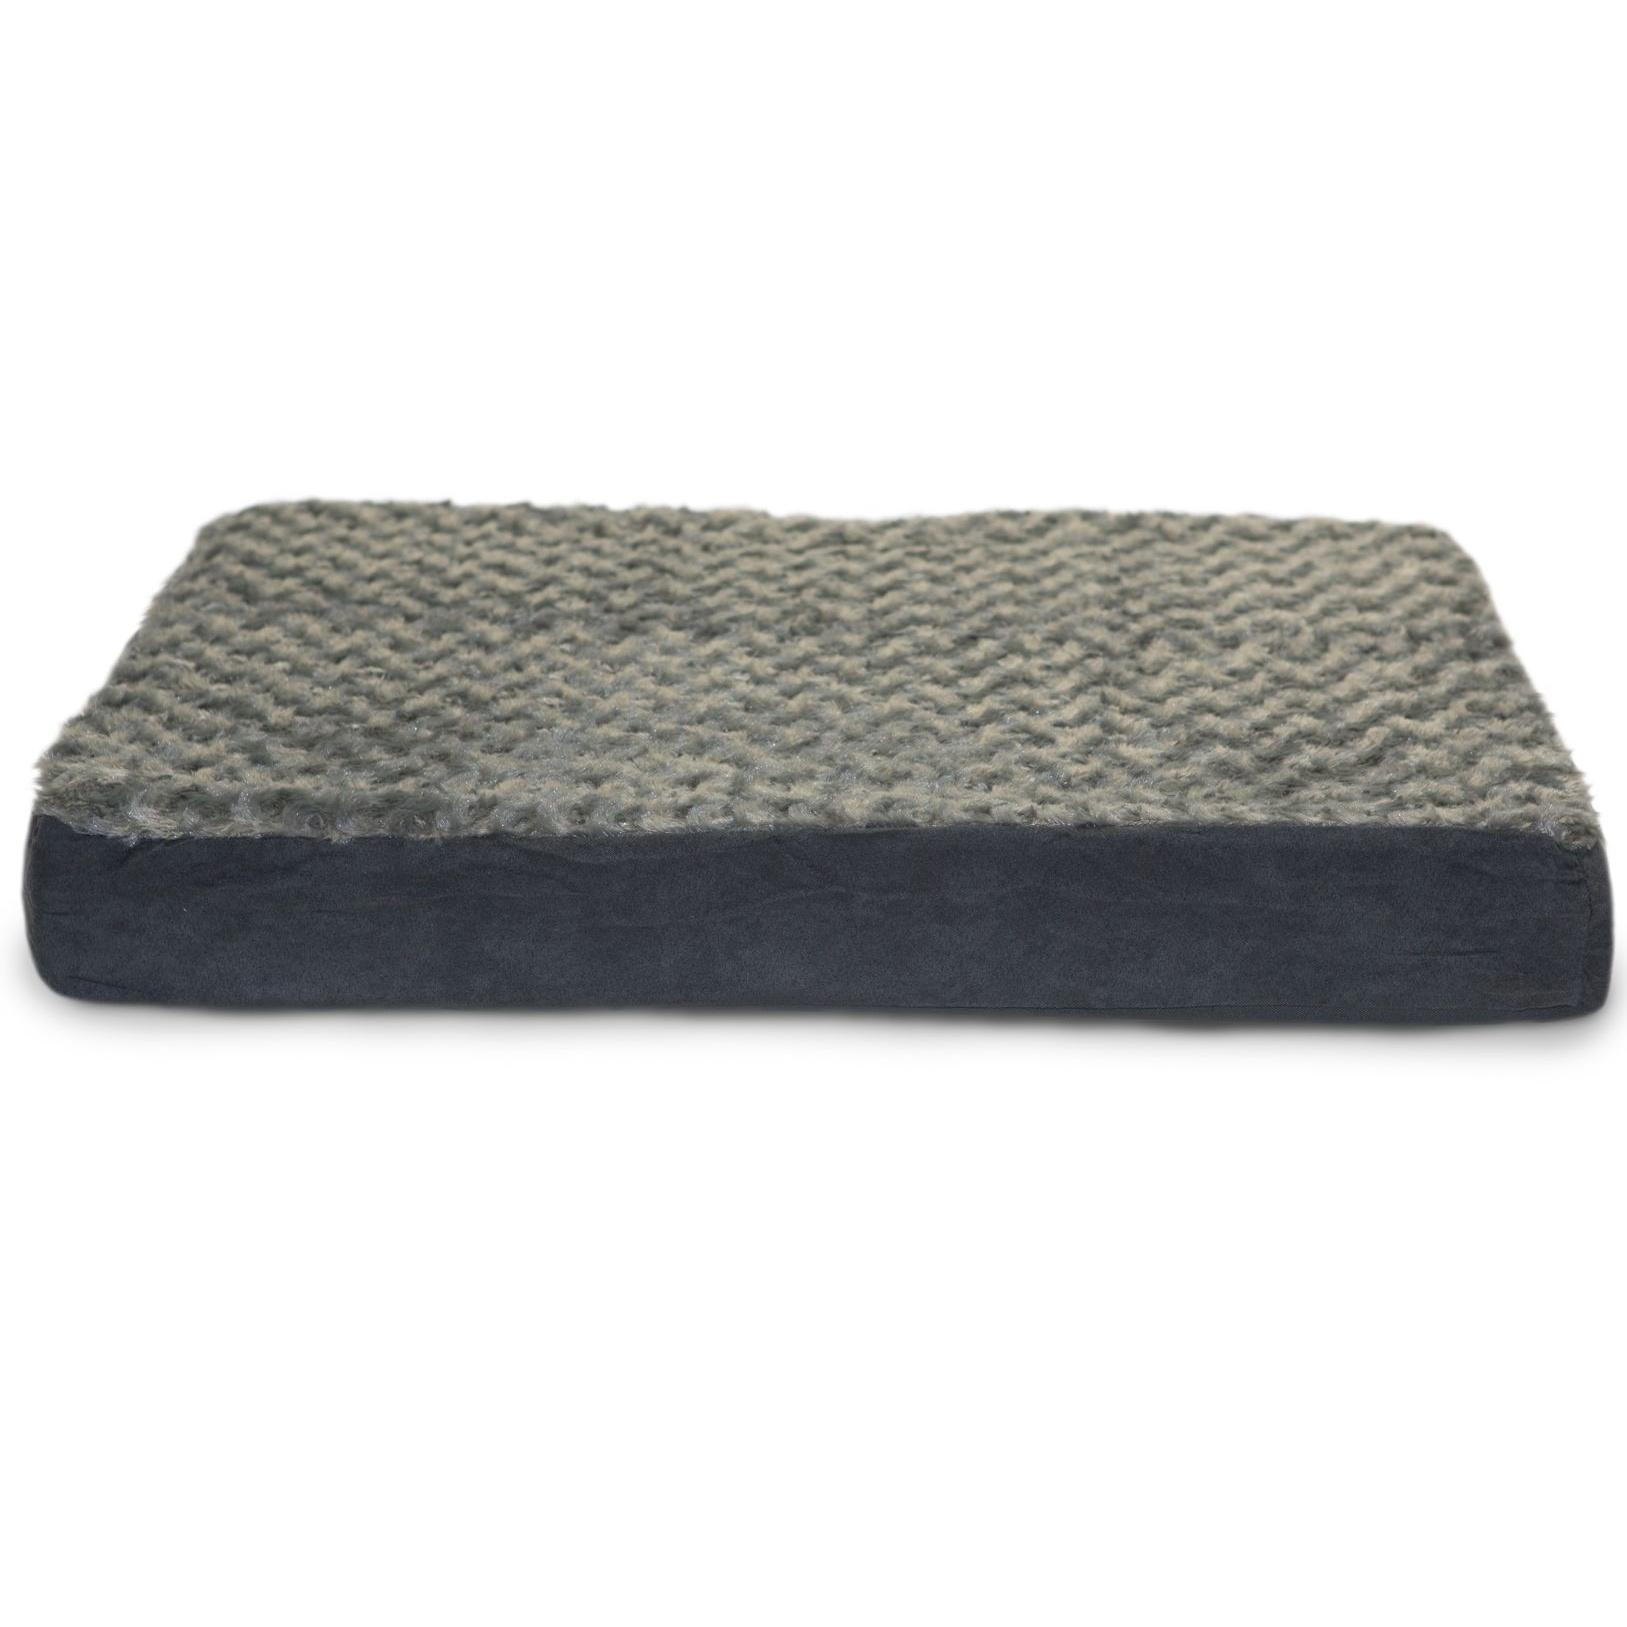 FurHaven Ultra Plush Deluxe Orthopedic Pet Bed - Gray